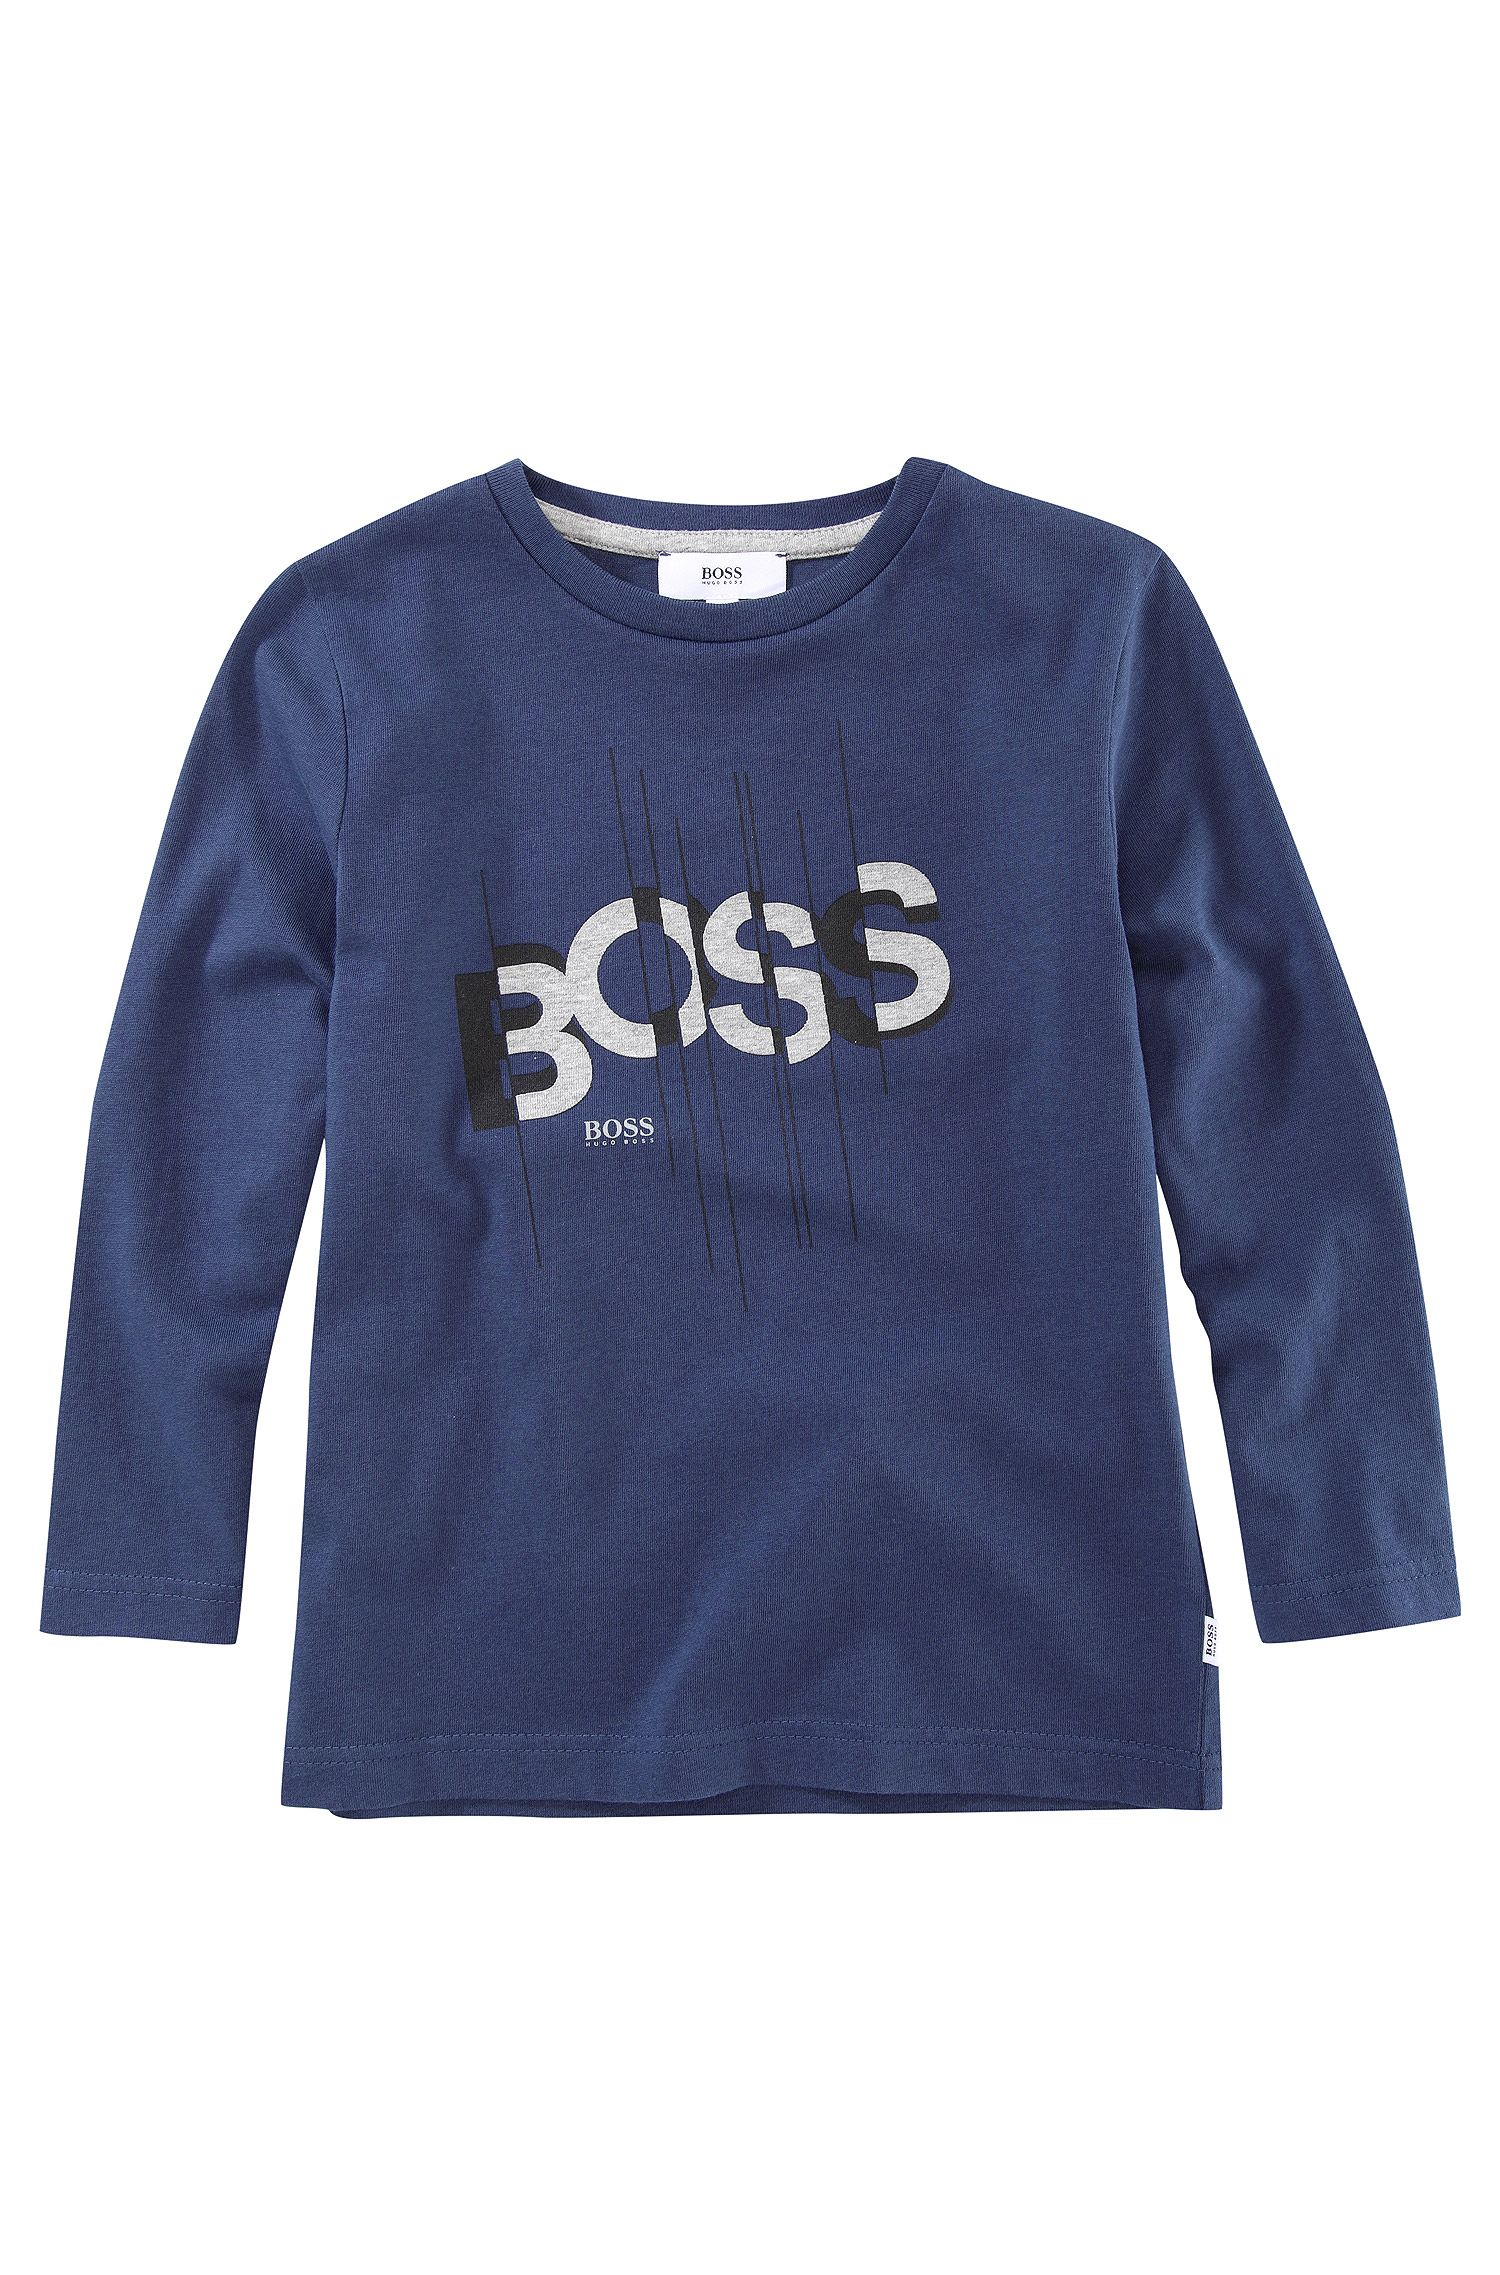 'J25581' | Boys Long-Sleeved Cotton Crewneck Graphic T-Shirt